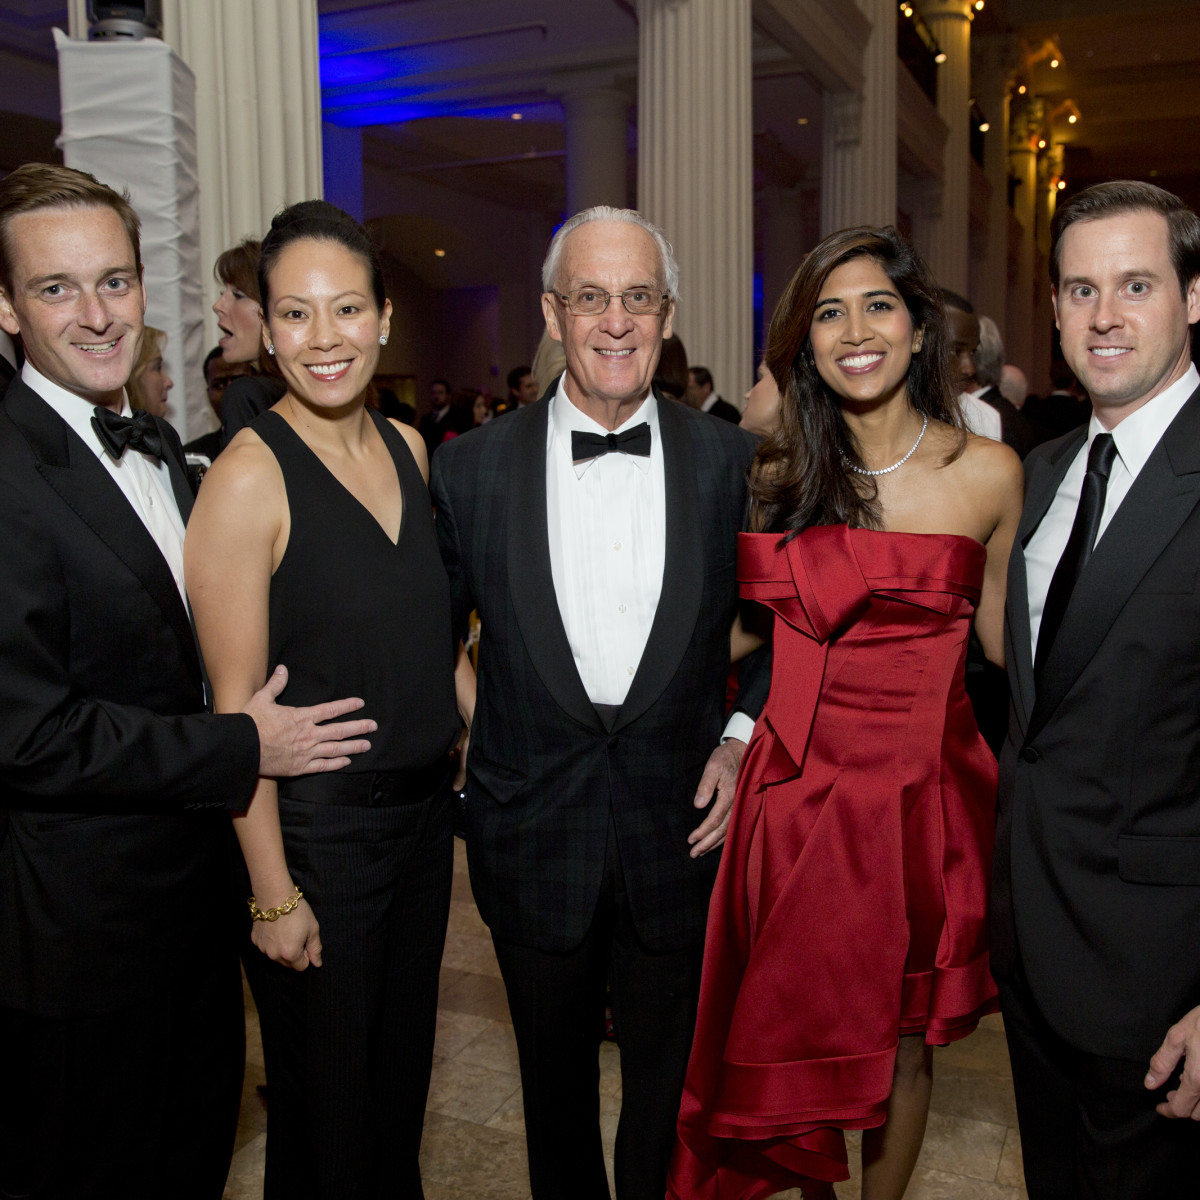 News, Shelby, Houston Symphony Opening Night, Sept. 2015, John & Ting Bresnahan, Peter Brown, Divya & Chris Brown